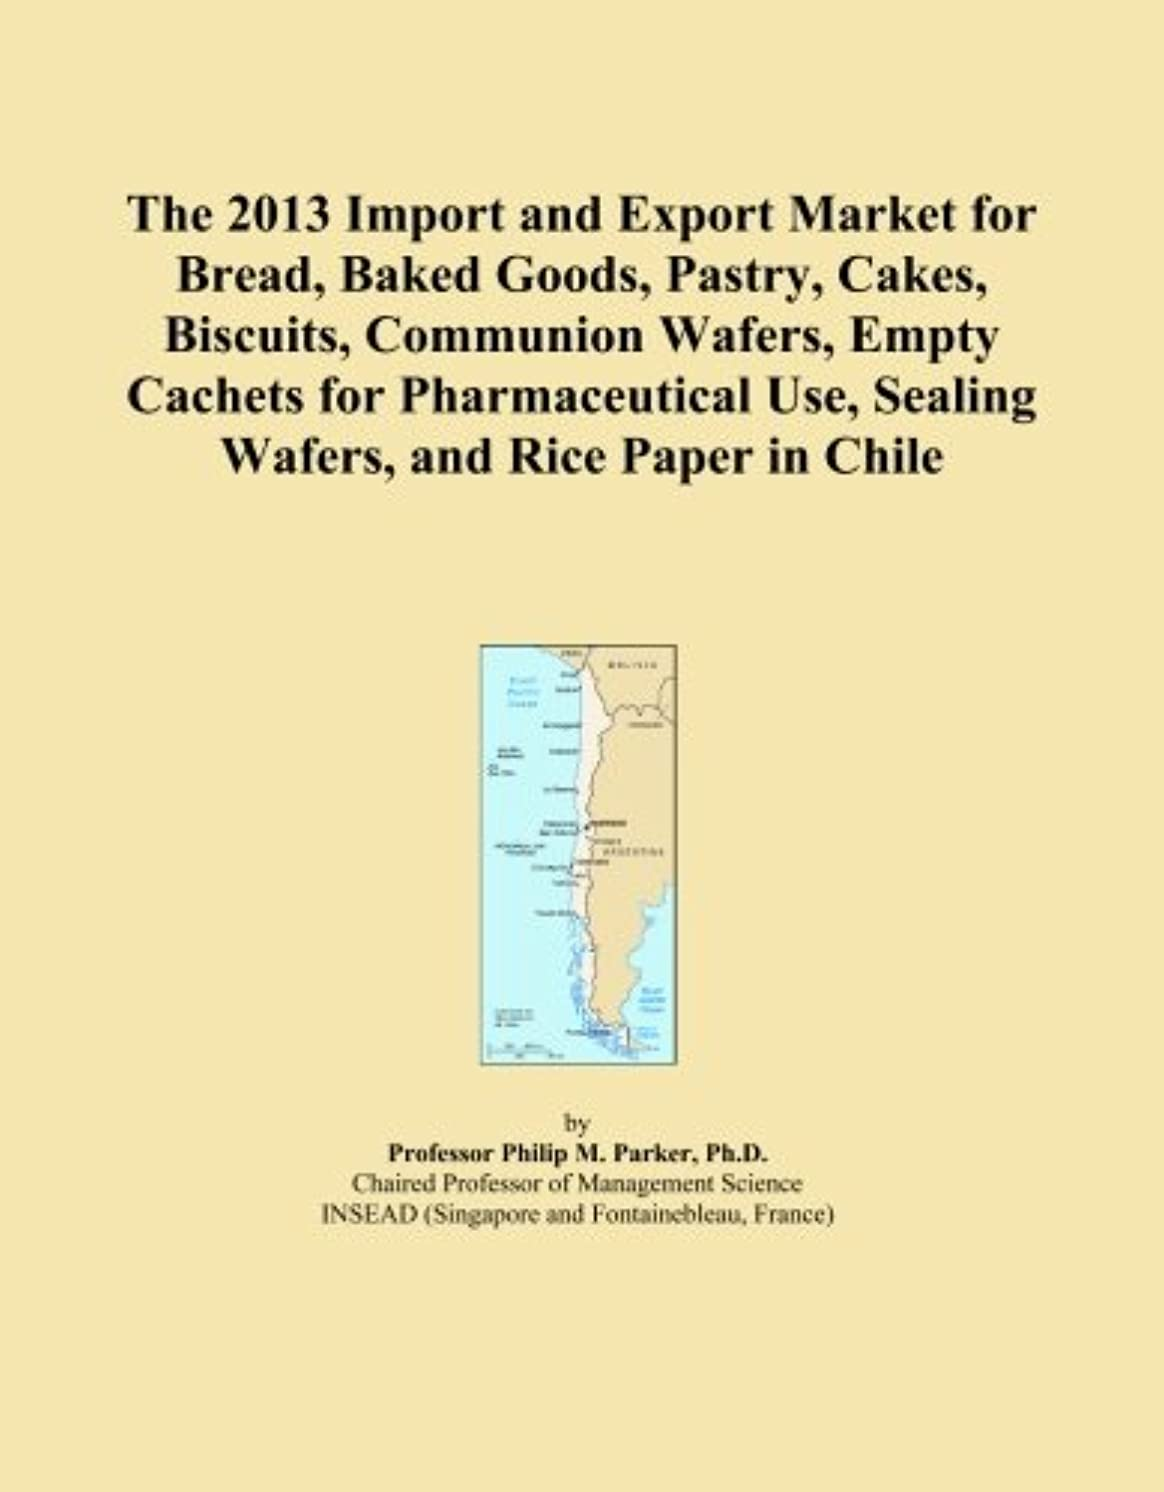 The 2013 Import and Export Market for Bread, Baked Goods, Pastry, Cakes, Biscuits, Communion Wafers, Empty Cachets for Pharmaceutical Use, Sealing Wafers, and Rice Paper in Chile